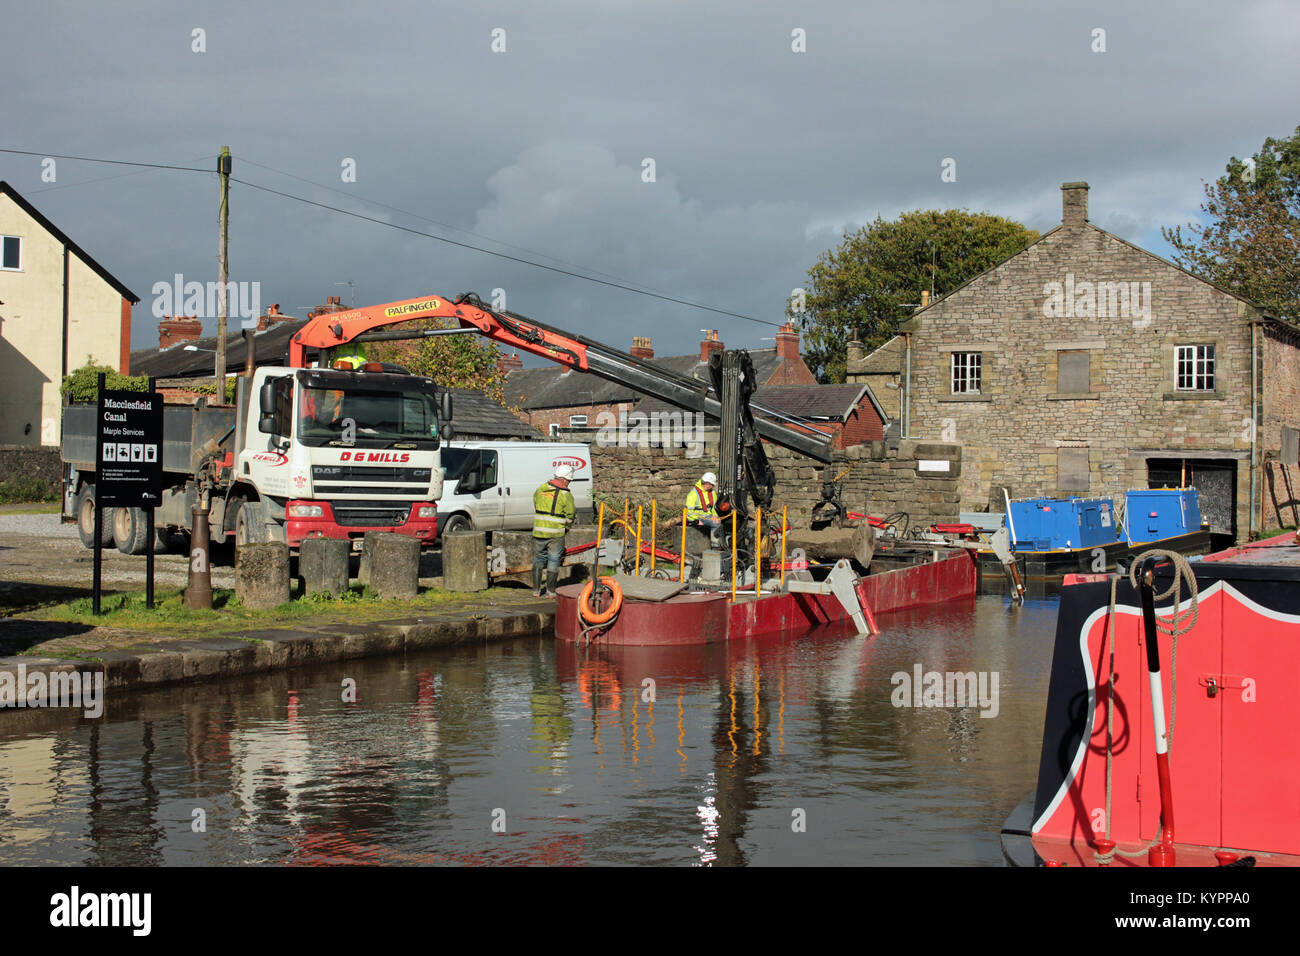 Civil engineering contractors working for the Canal and River trust, D G Mills loading construction materials into - Stock Image